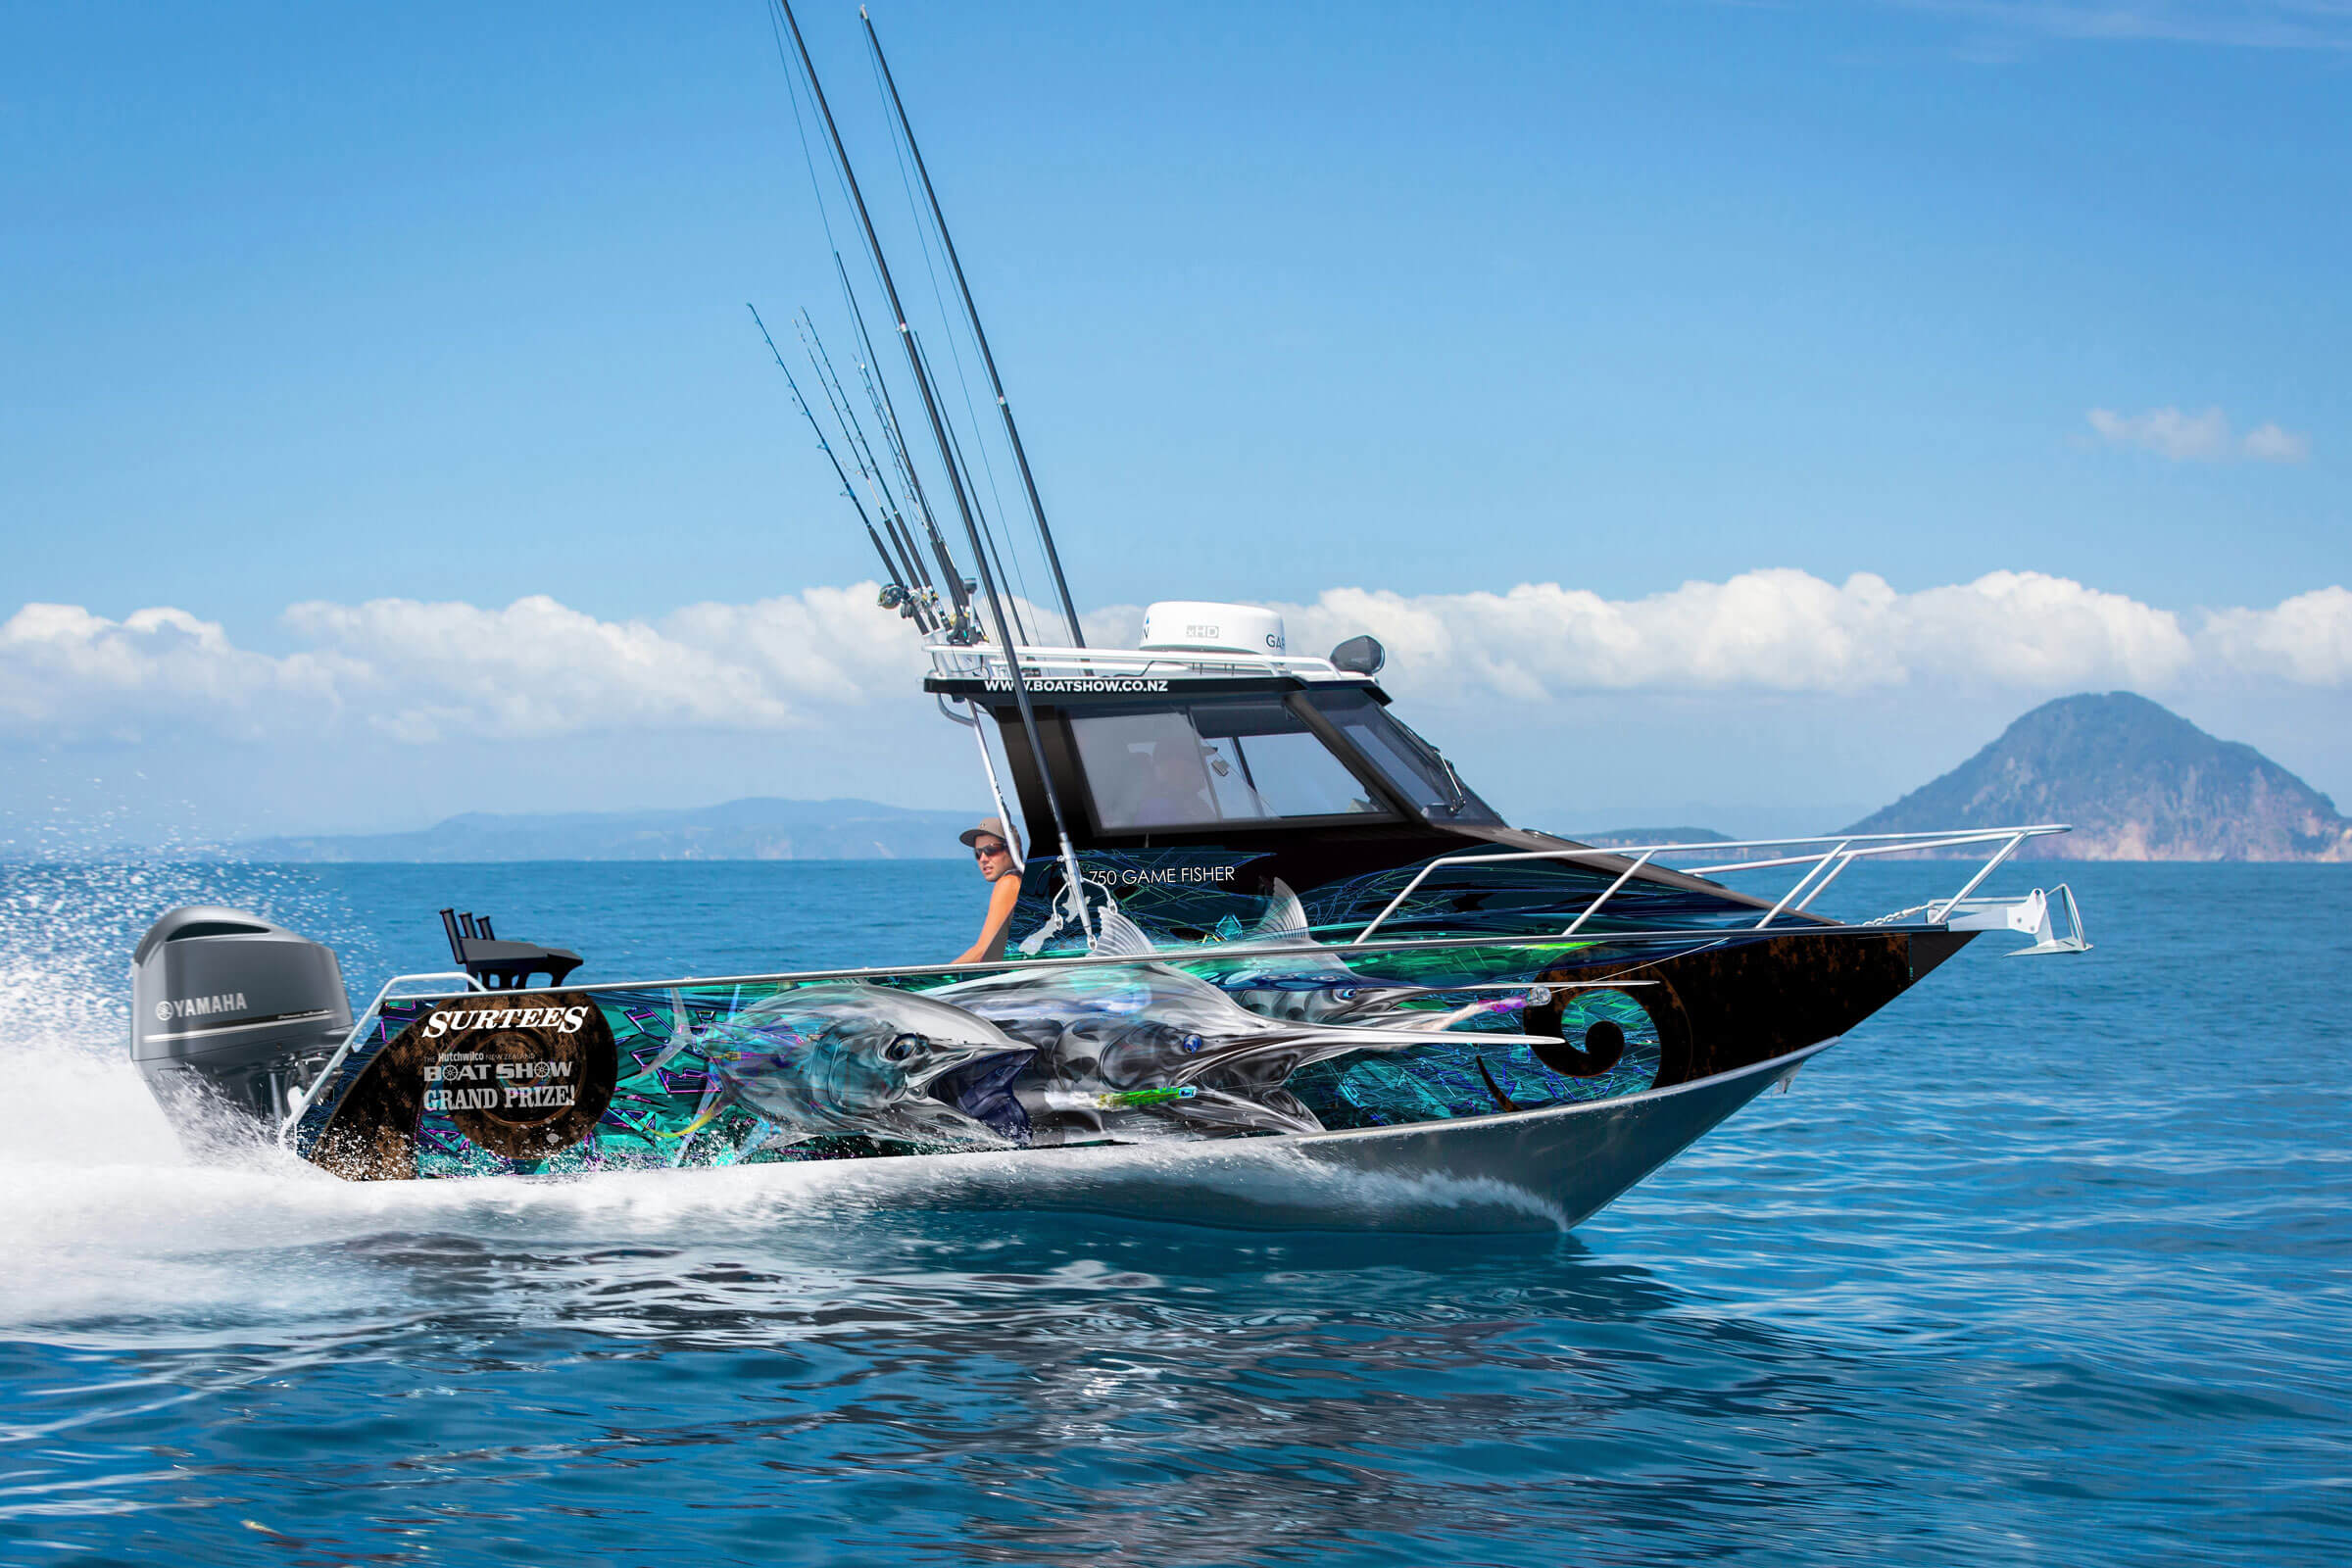 Surtees/Yamaha Grand Prize a great lure for 2021 Hutchwilco NZ Boat Show!